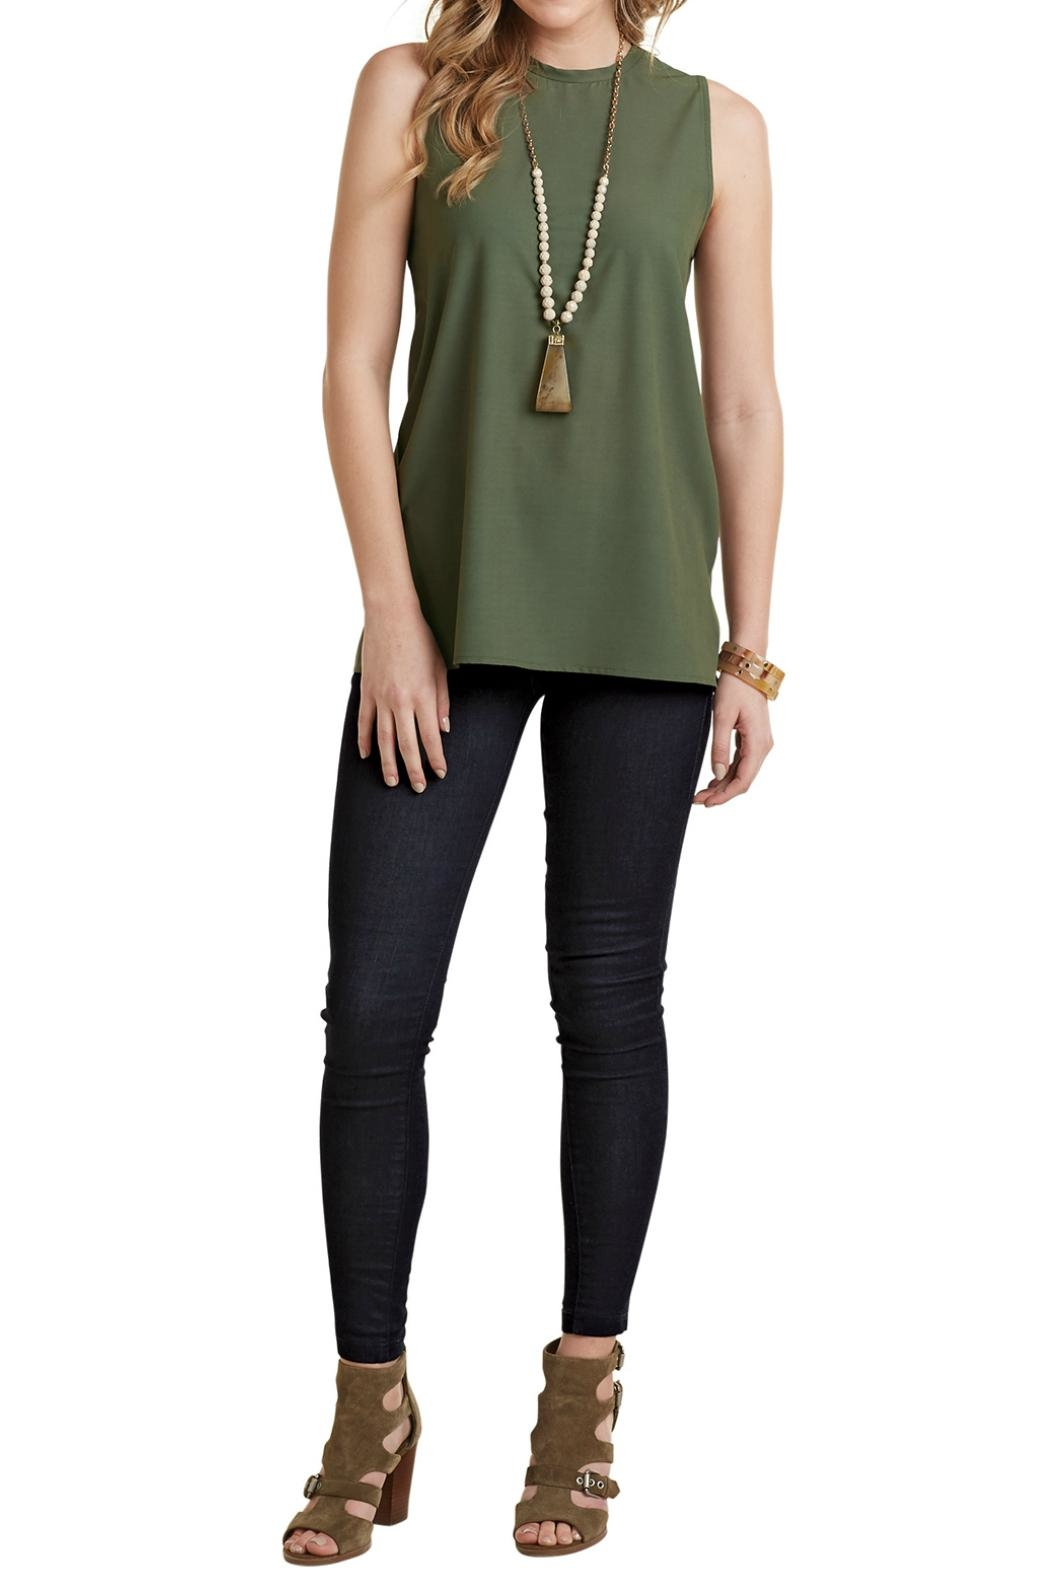 Mud Pie Sleeveless Layering Tank Top - Front Cropped Image